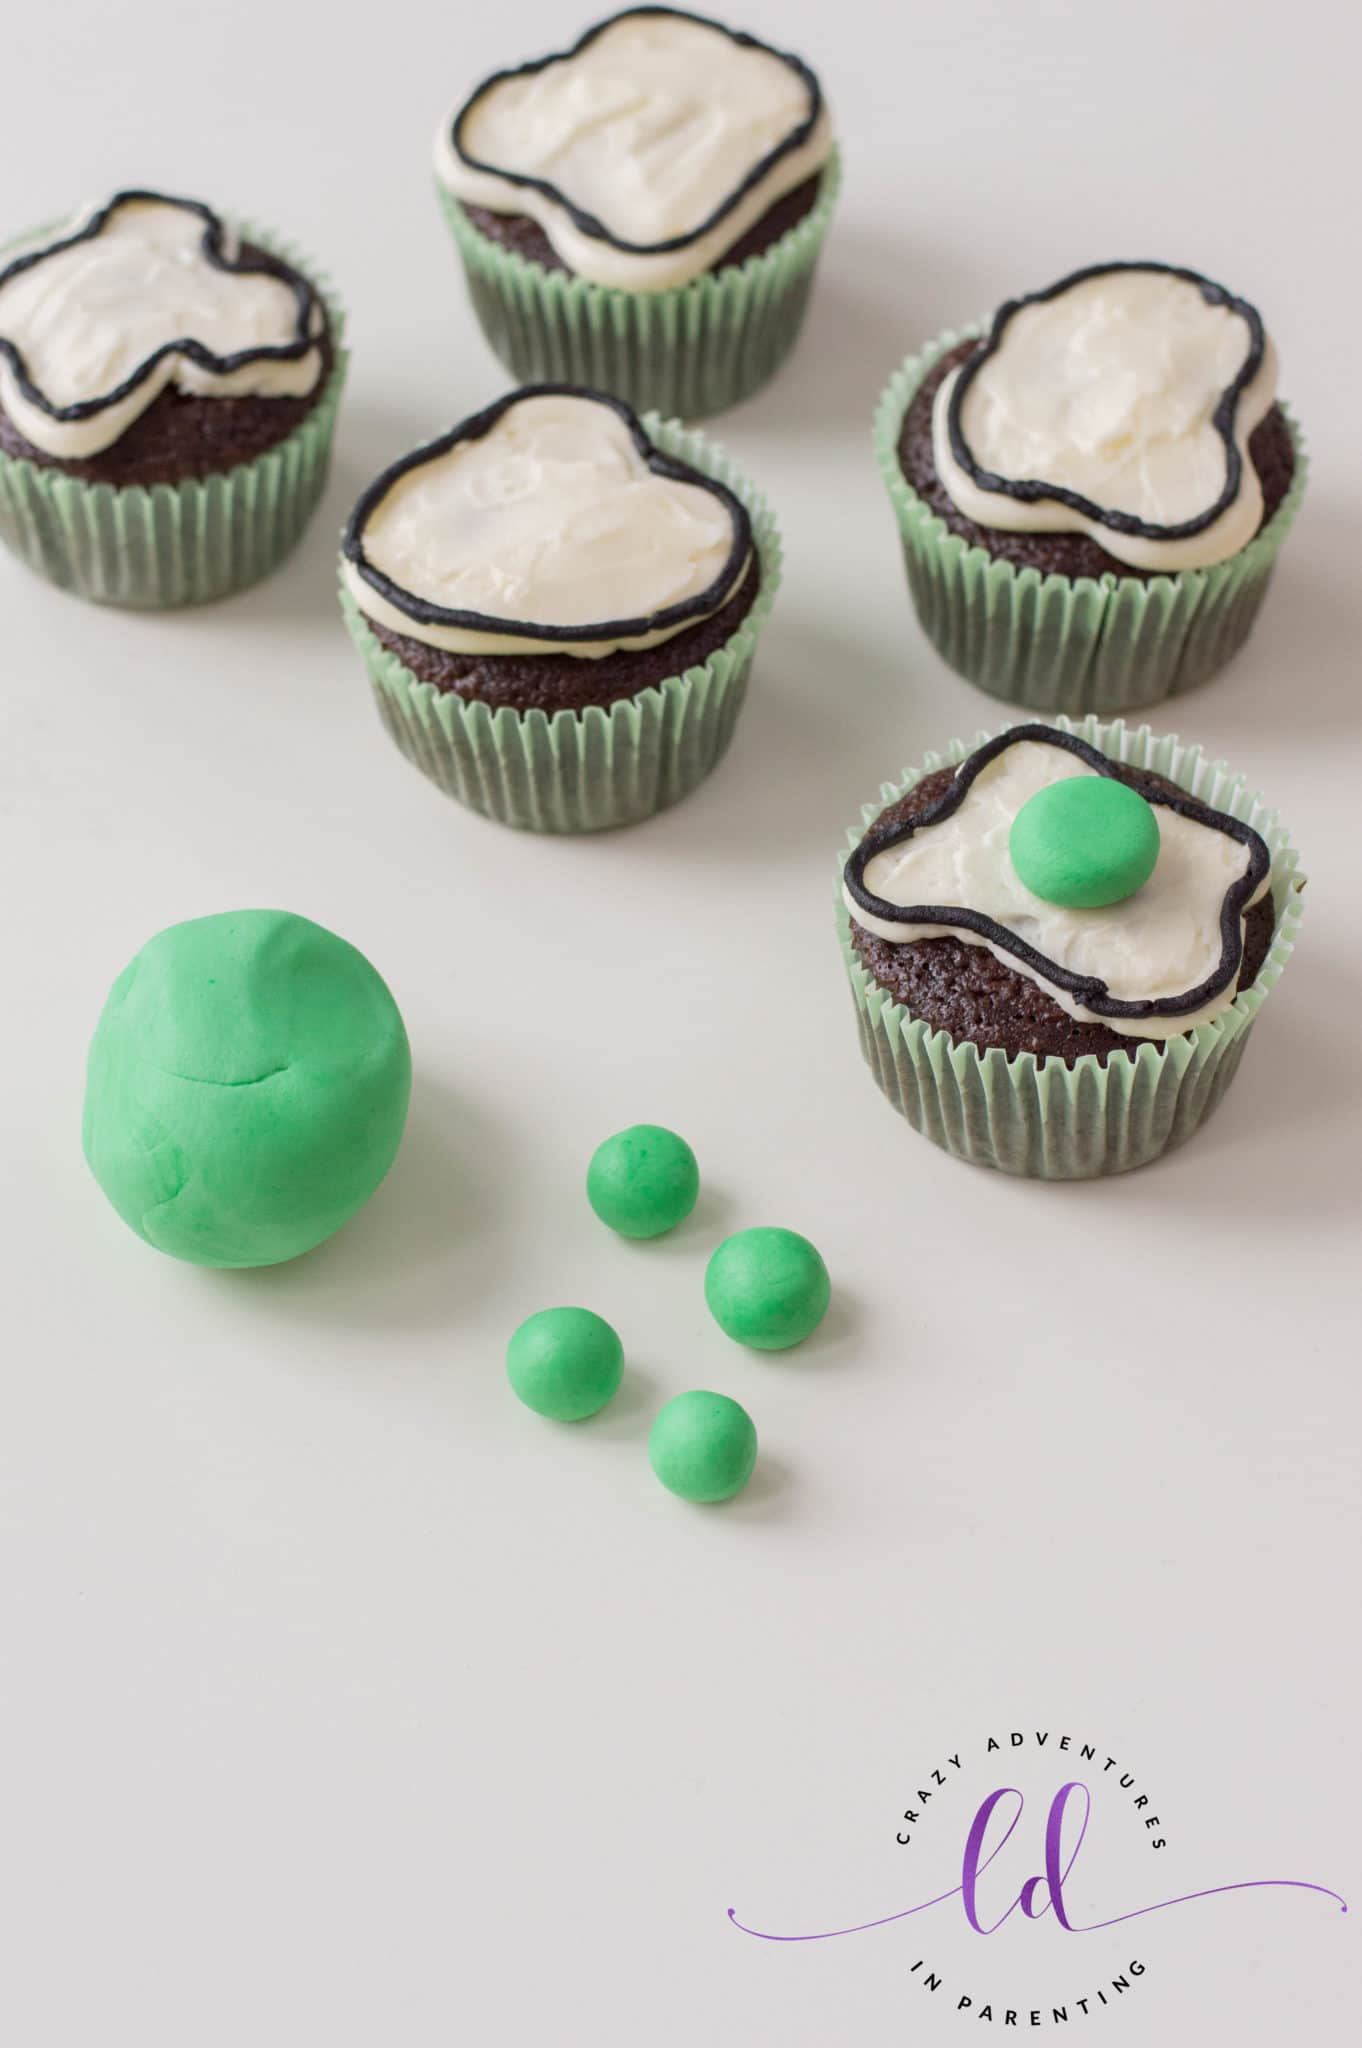 Form Fondant Egg Yolks for Green Eggs and Ham Cupcakes